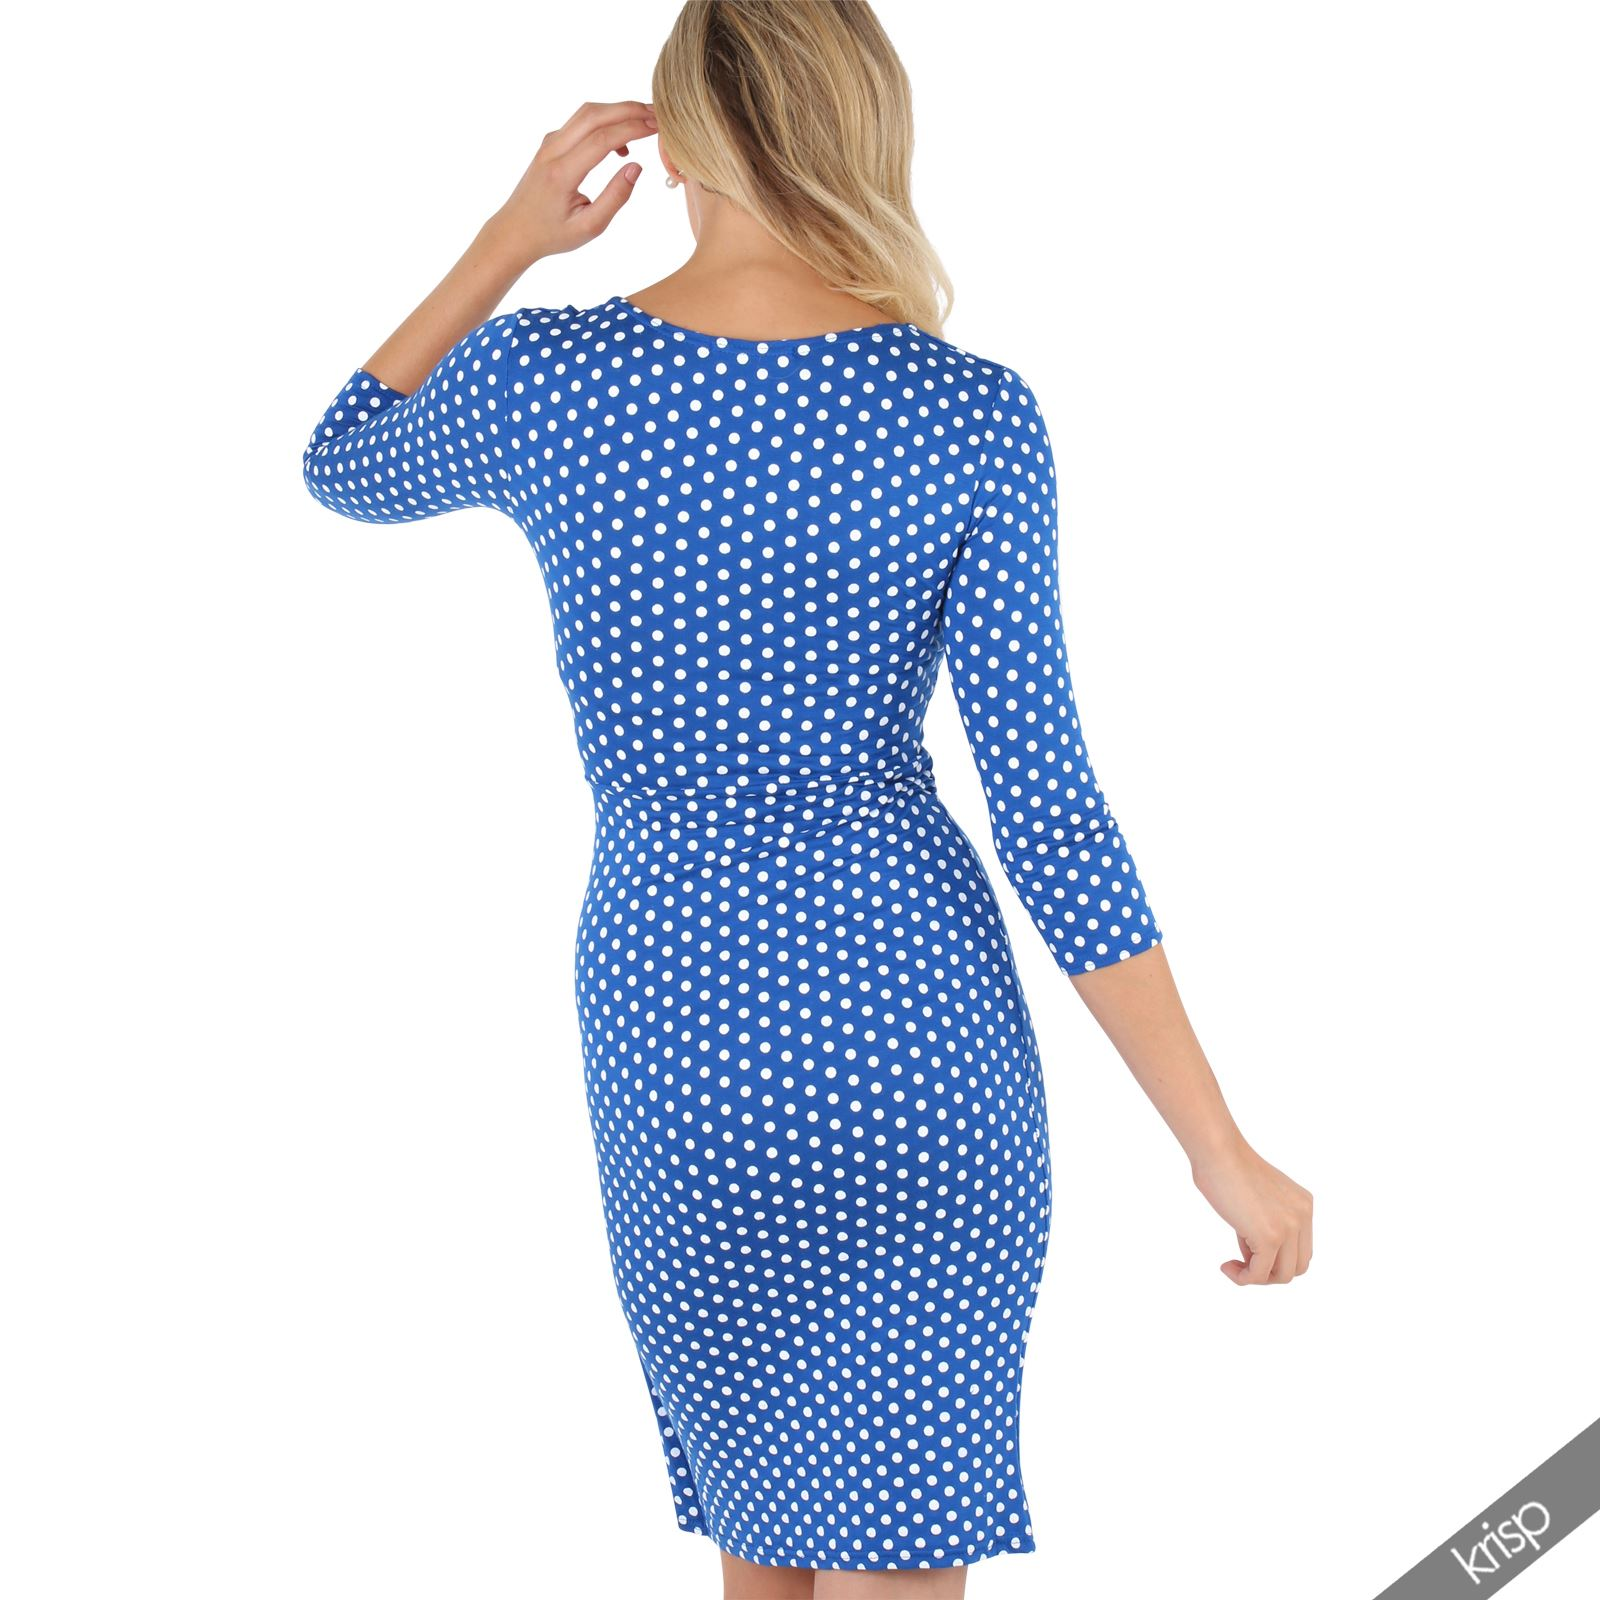 Womens-Polka-Dot-Dress-Pleated-Skirt-Wrap-Front-Midi-V-Neck-Top-Swing-Party thumbnail 30